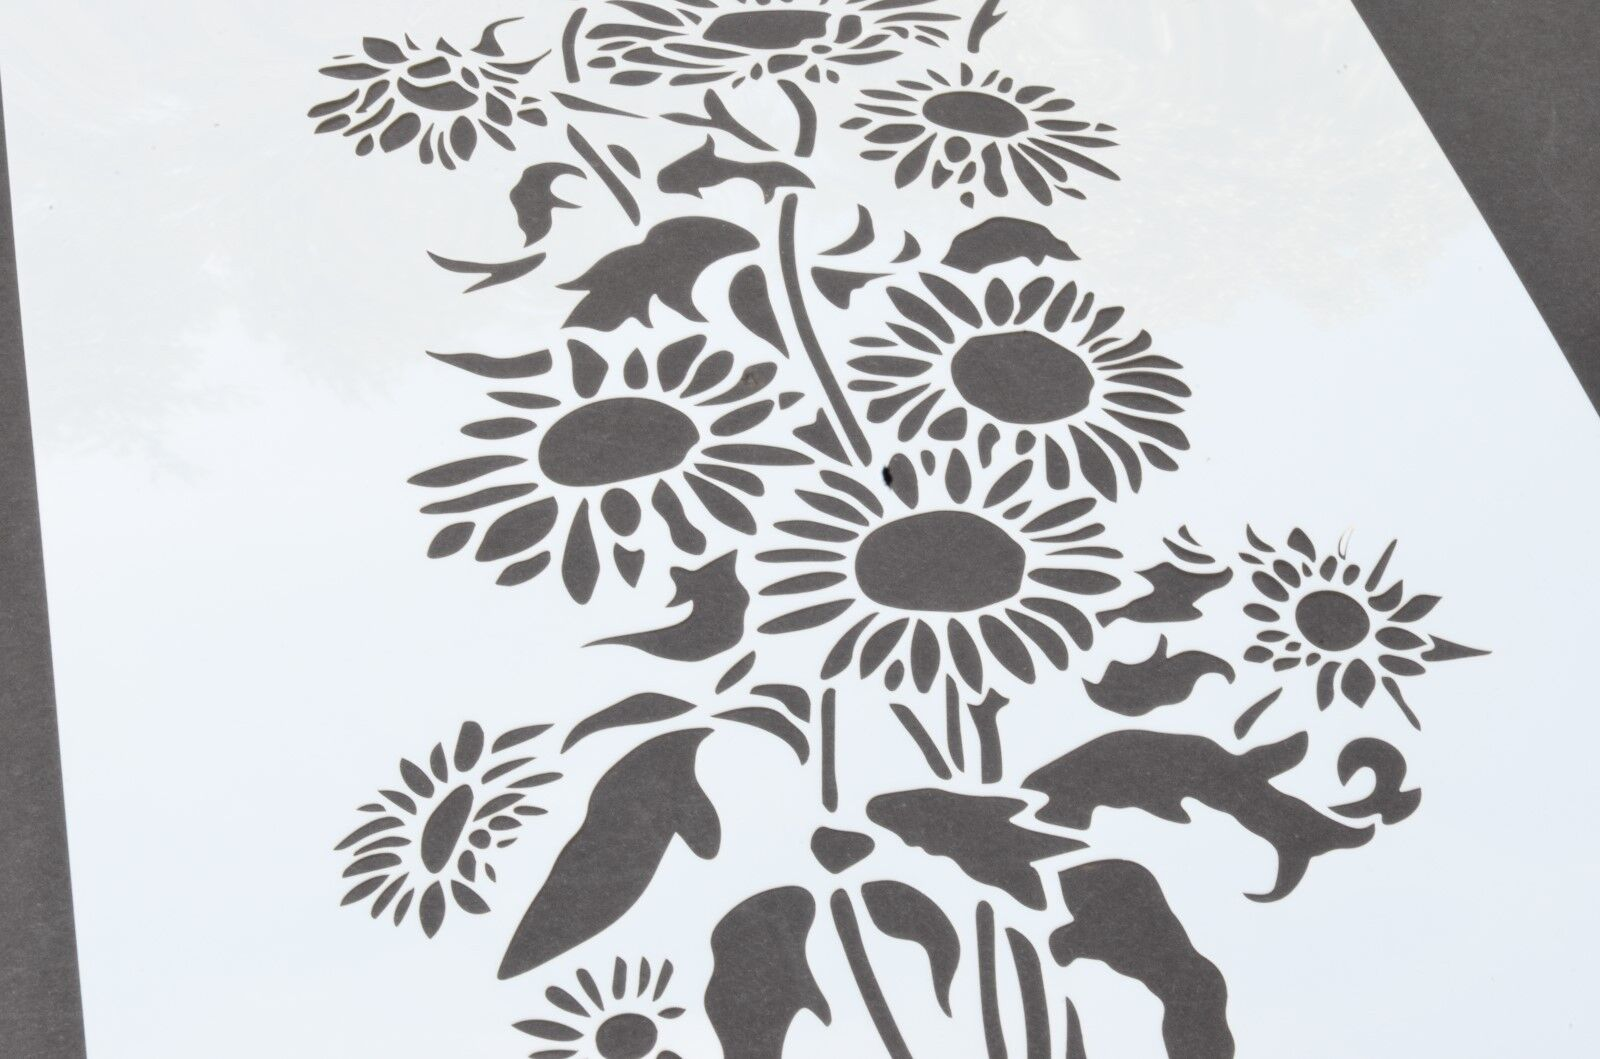 Hawaiian Sunflower 15 Flower Painting Stencils Assortment of Rose Daisy lily